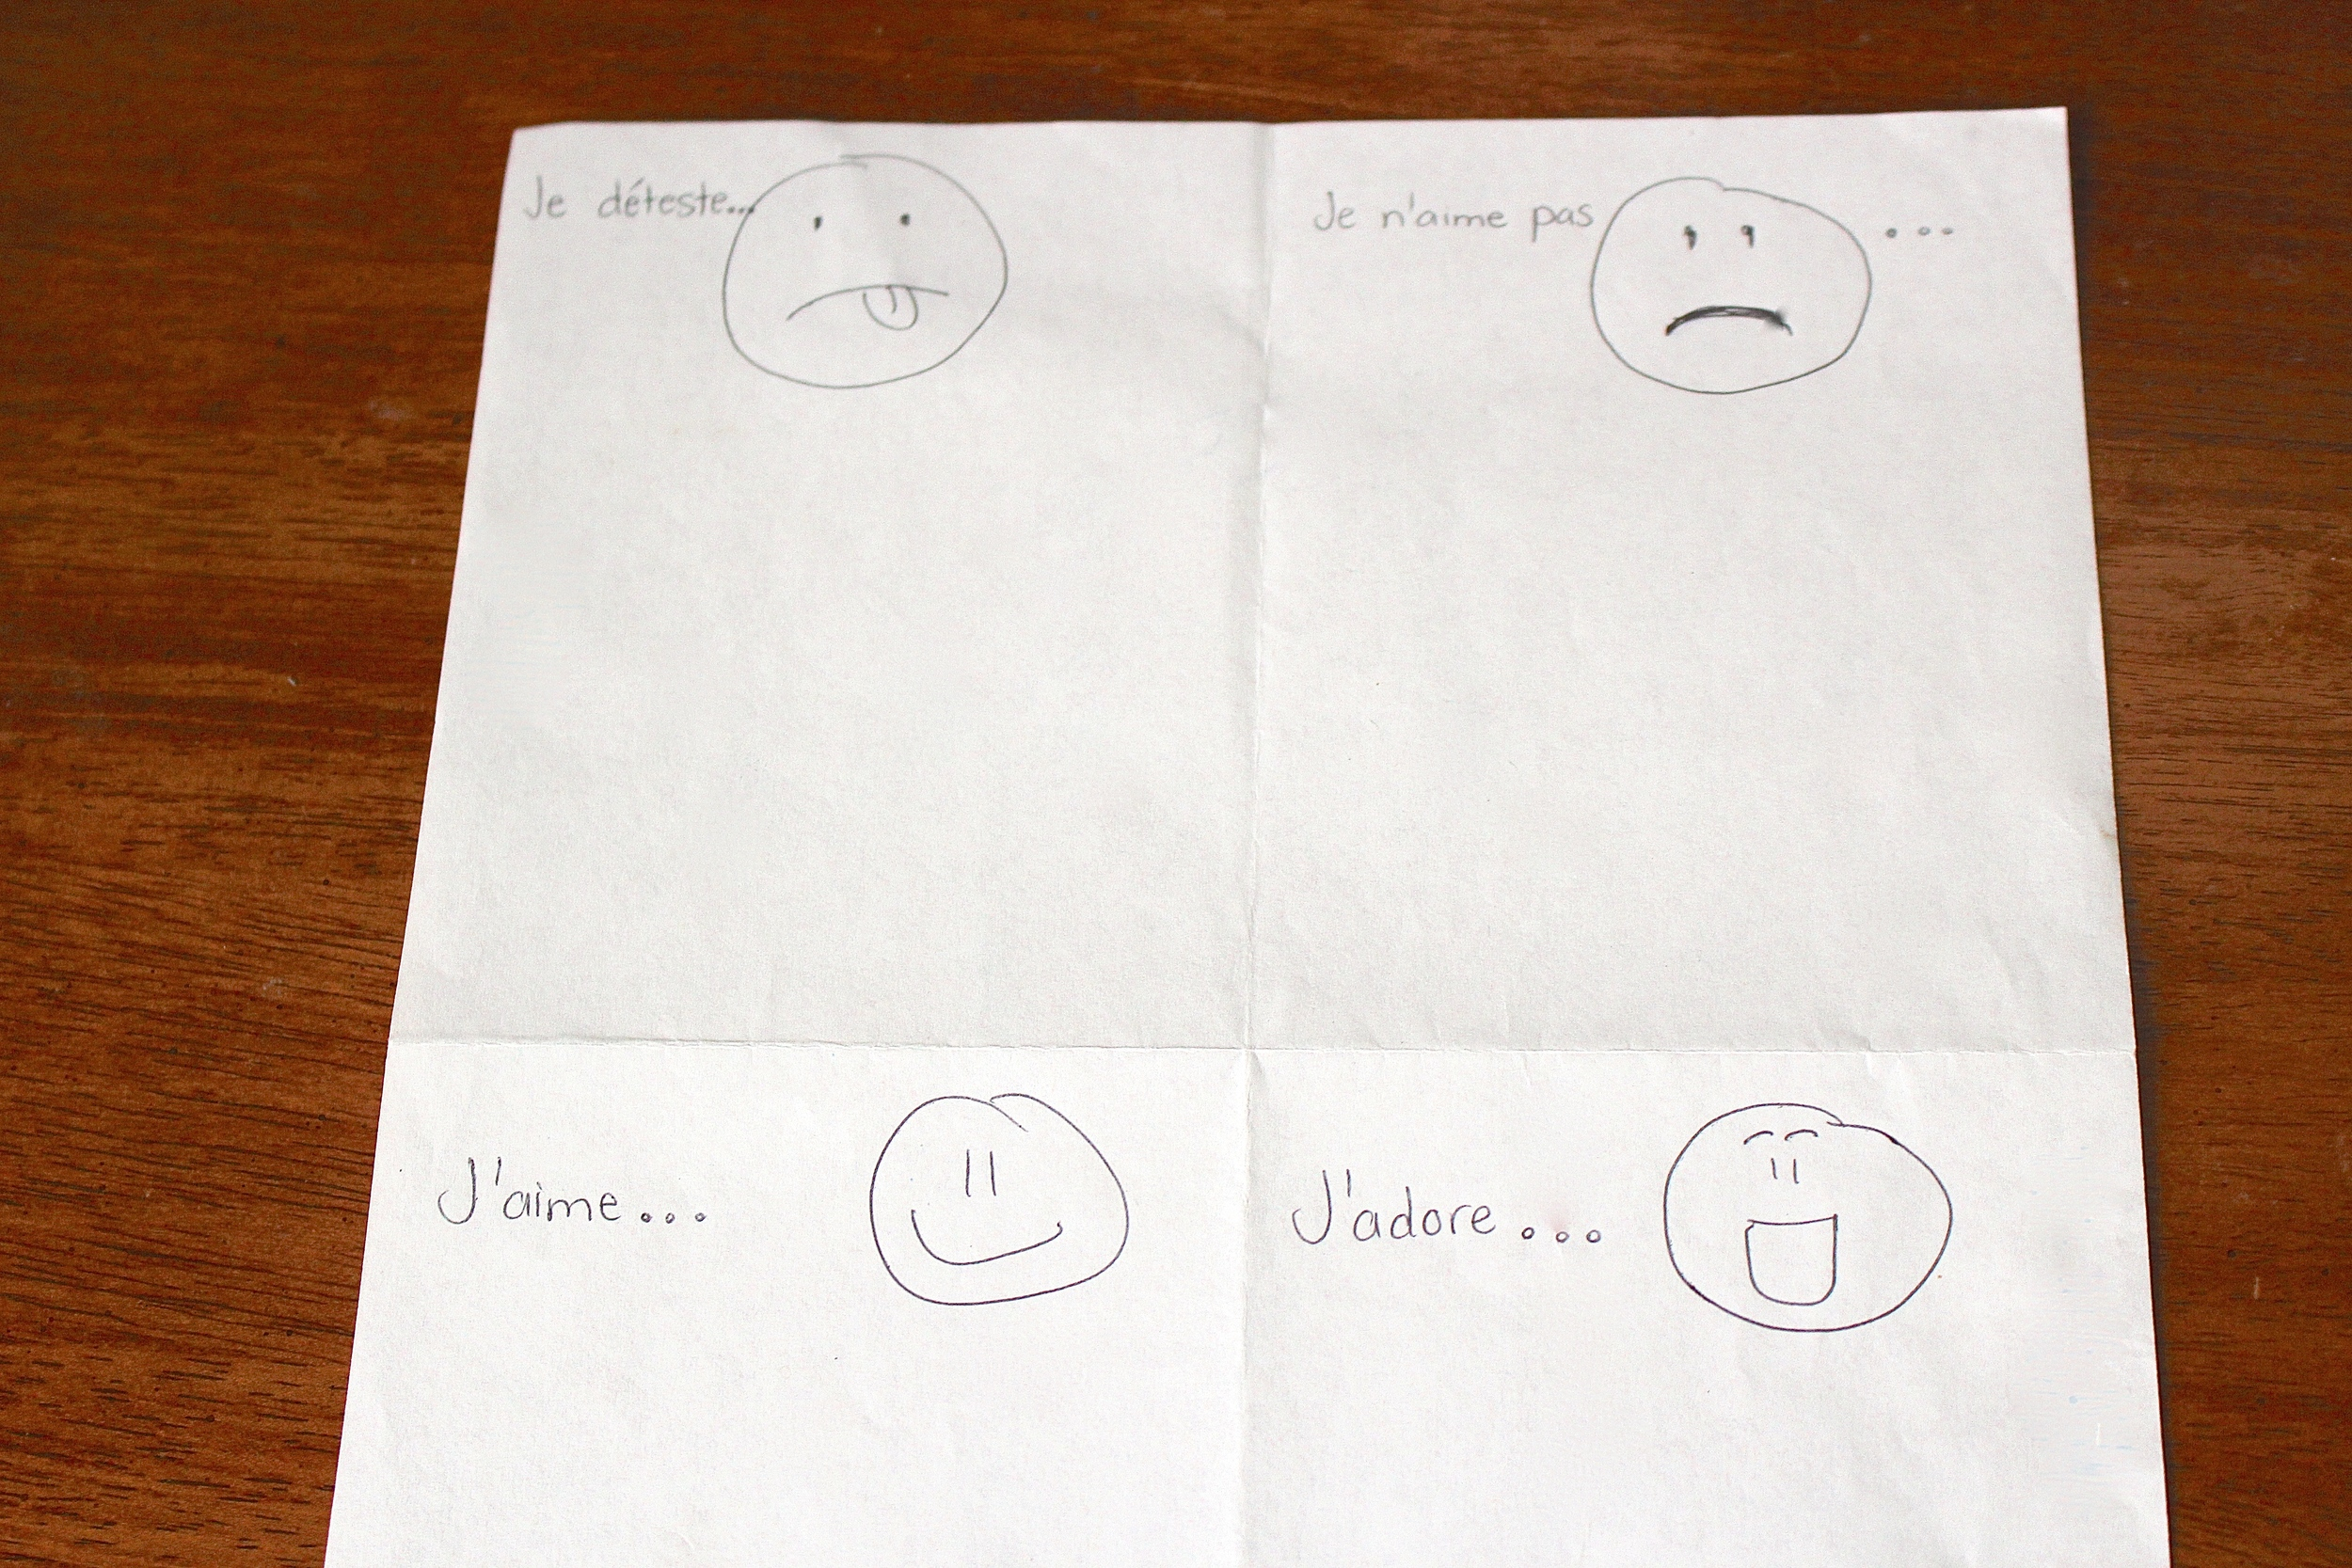 A simplified likes and dislikes chart quadrantthat students can create from scratch